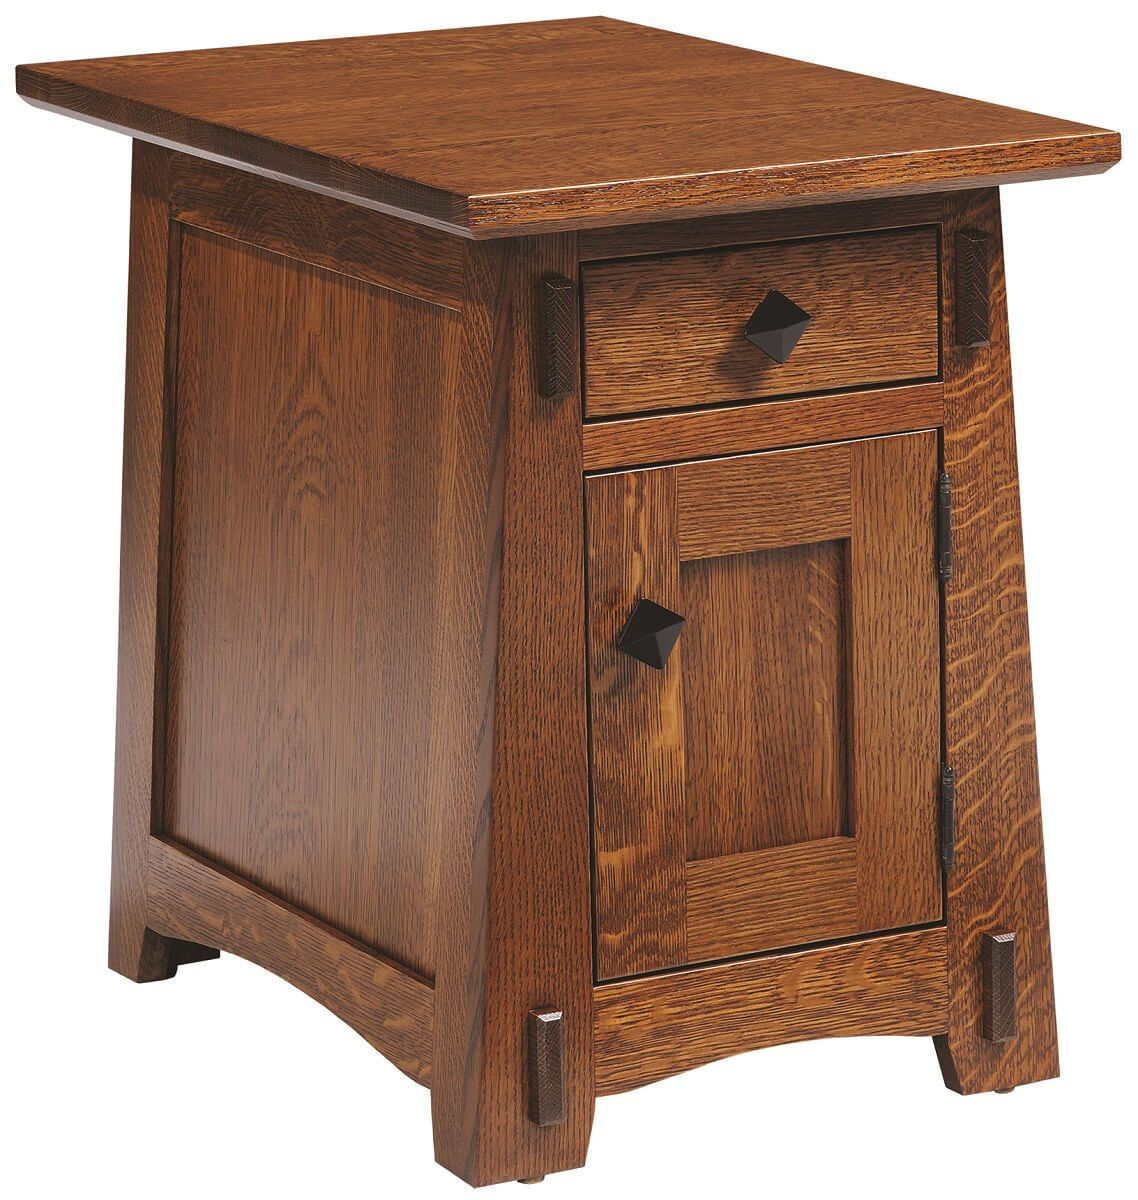 Woodley Road Accent Table